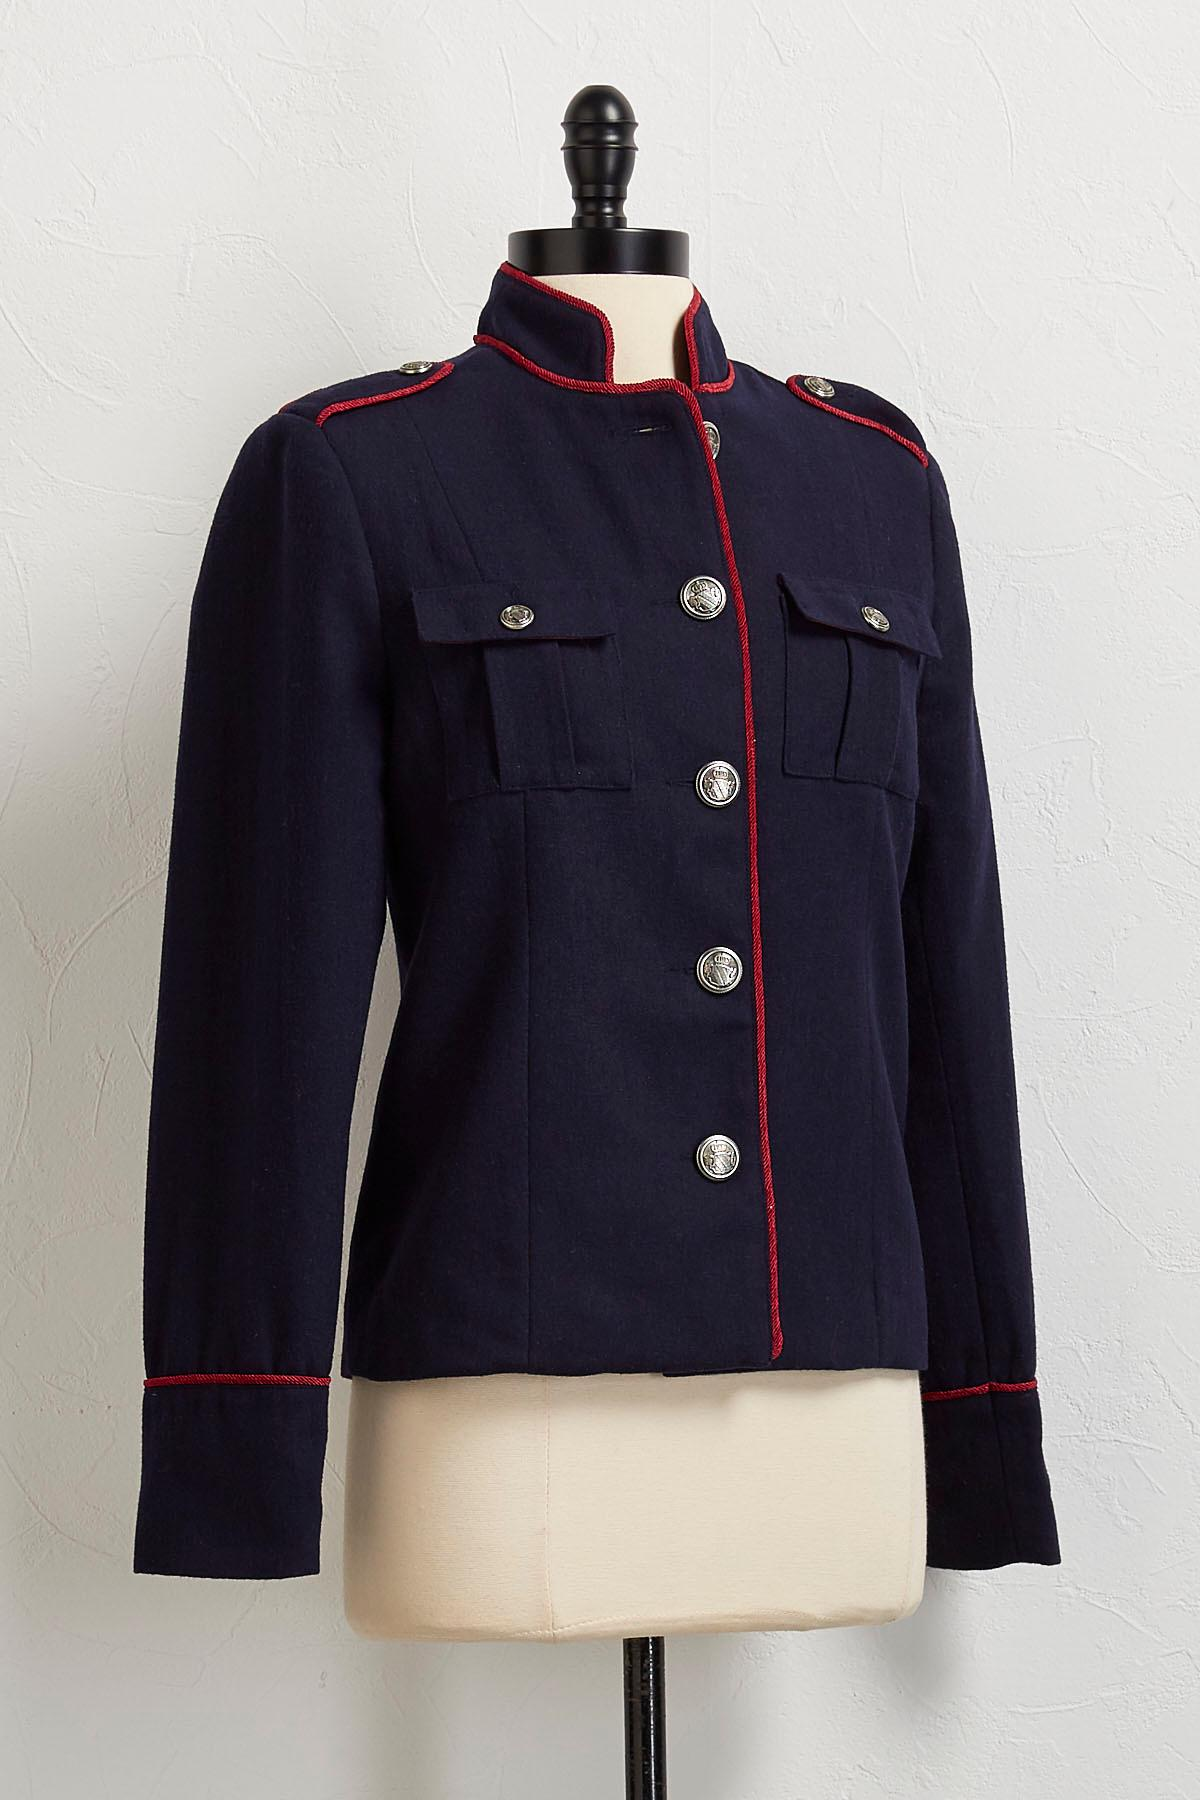 Military Clothing. Look sharp in some authentic military clothing. We carry a full line of BDUs (battle dress uniforms), Military Sweaters, graphic Tees, Sweatshirts, and more.